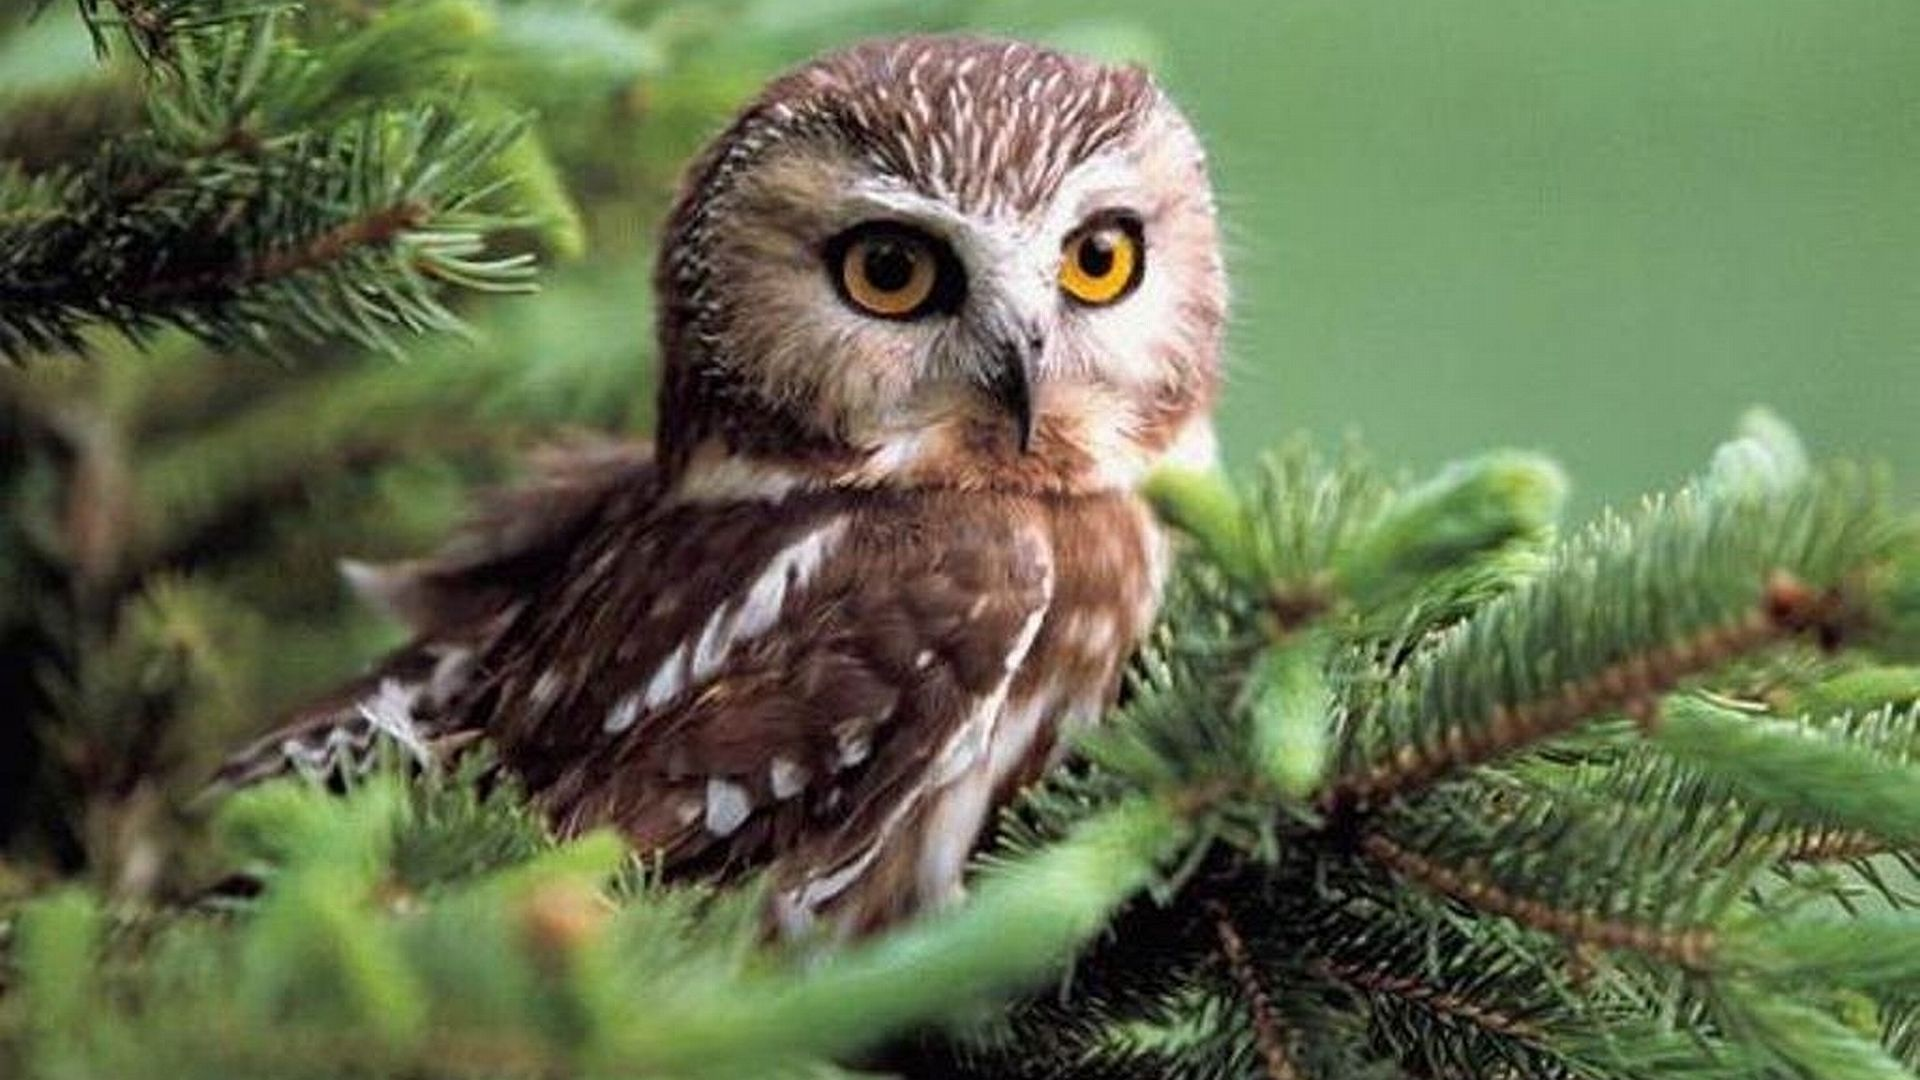 Owl wallpaper 2 for the love of owls owl wallpaper - Animal 1920x1080 ...